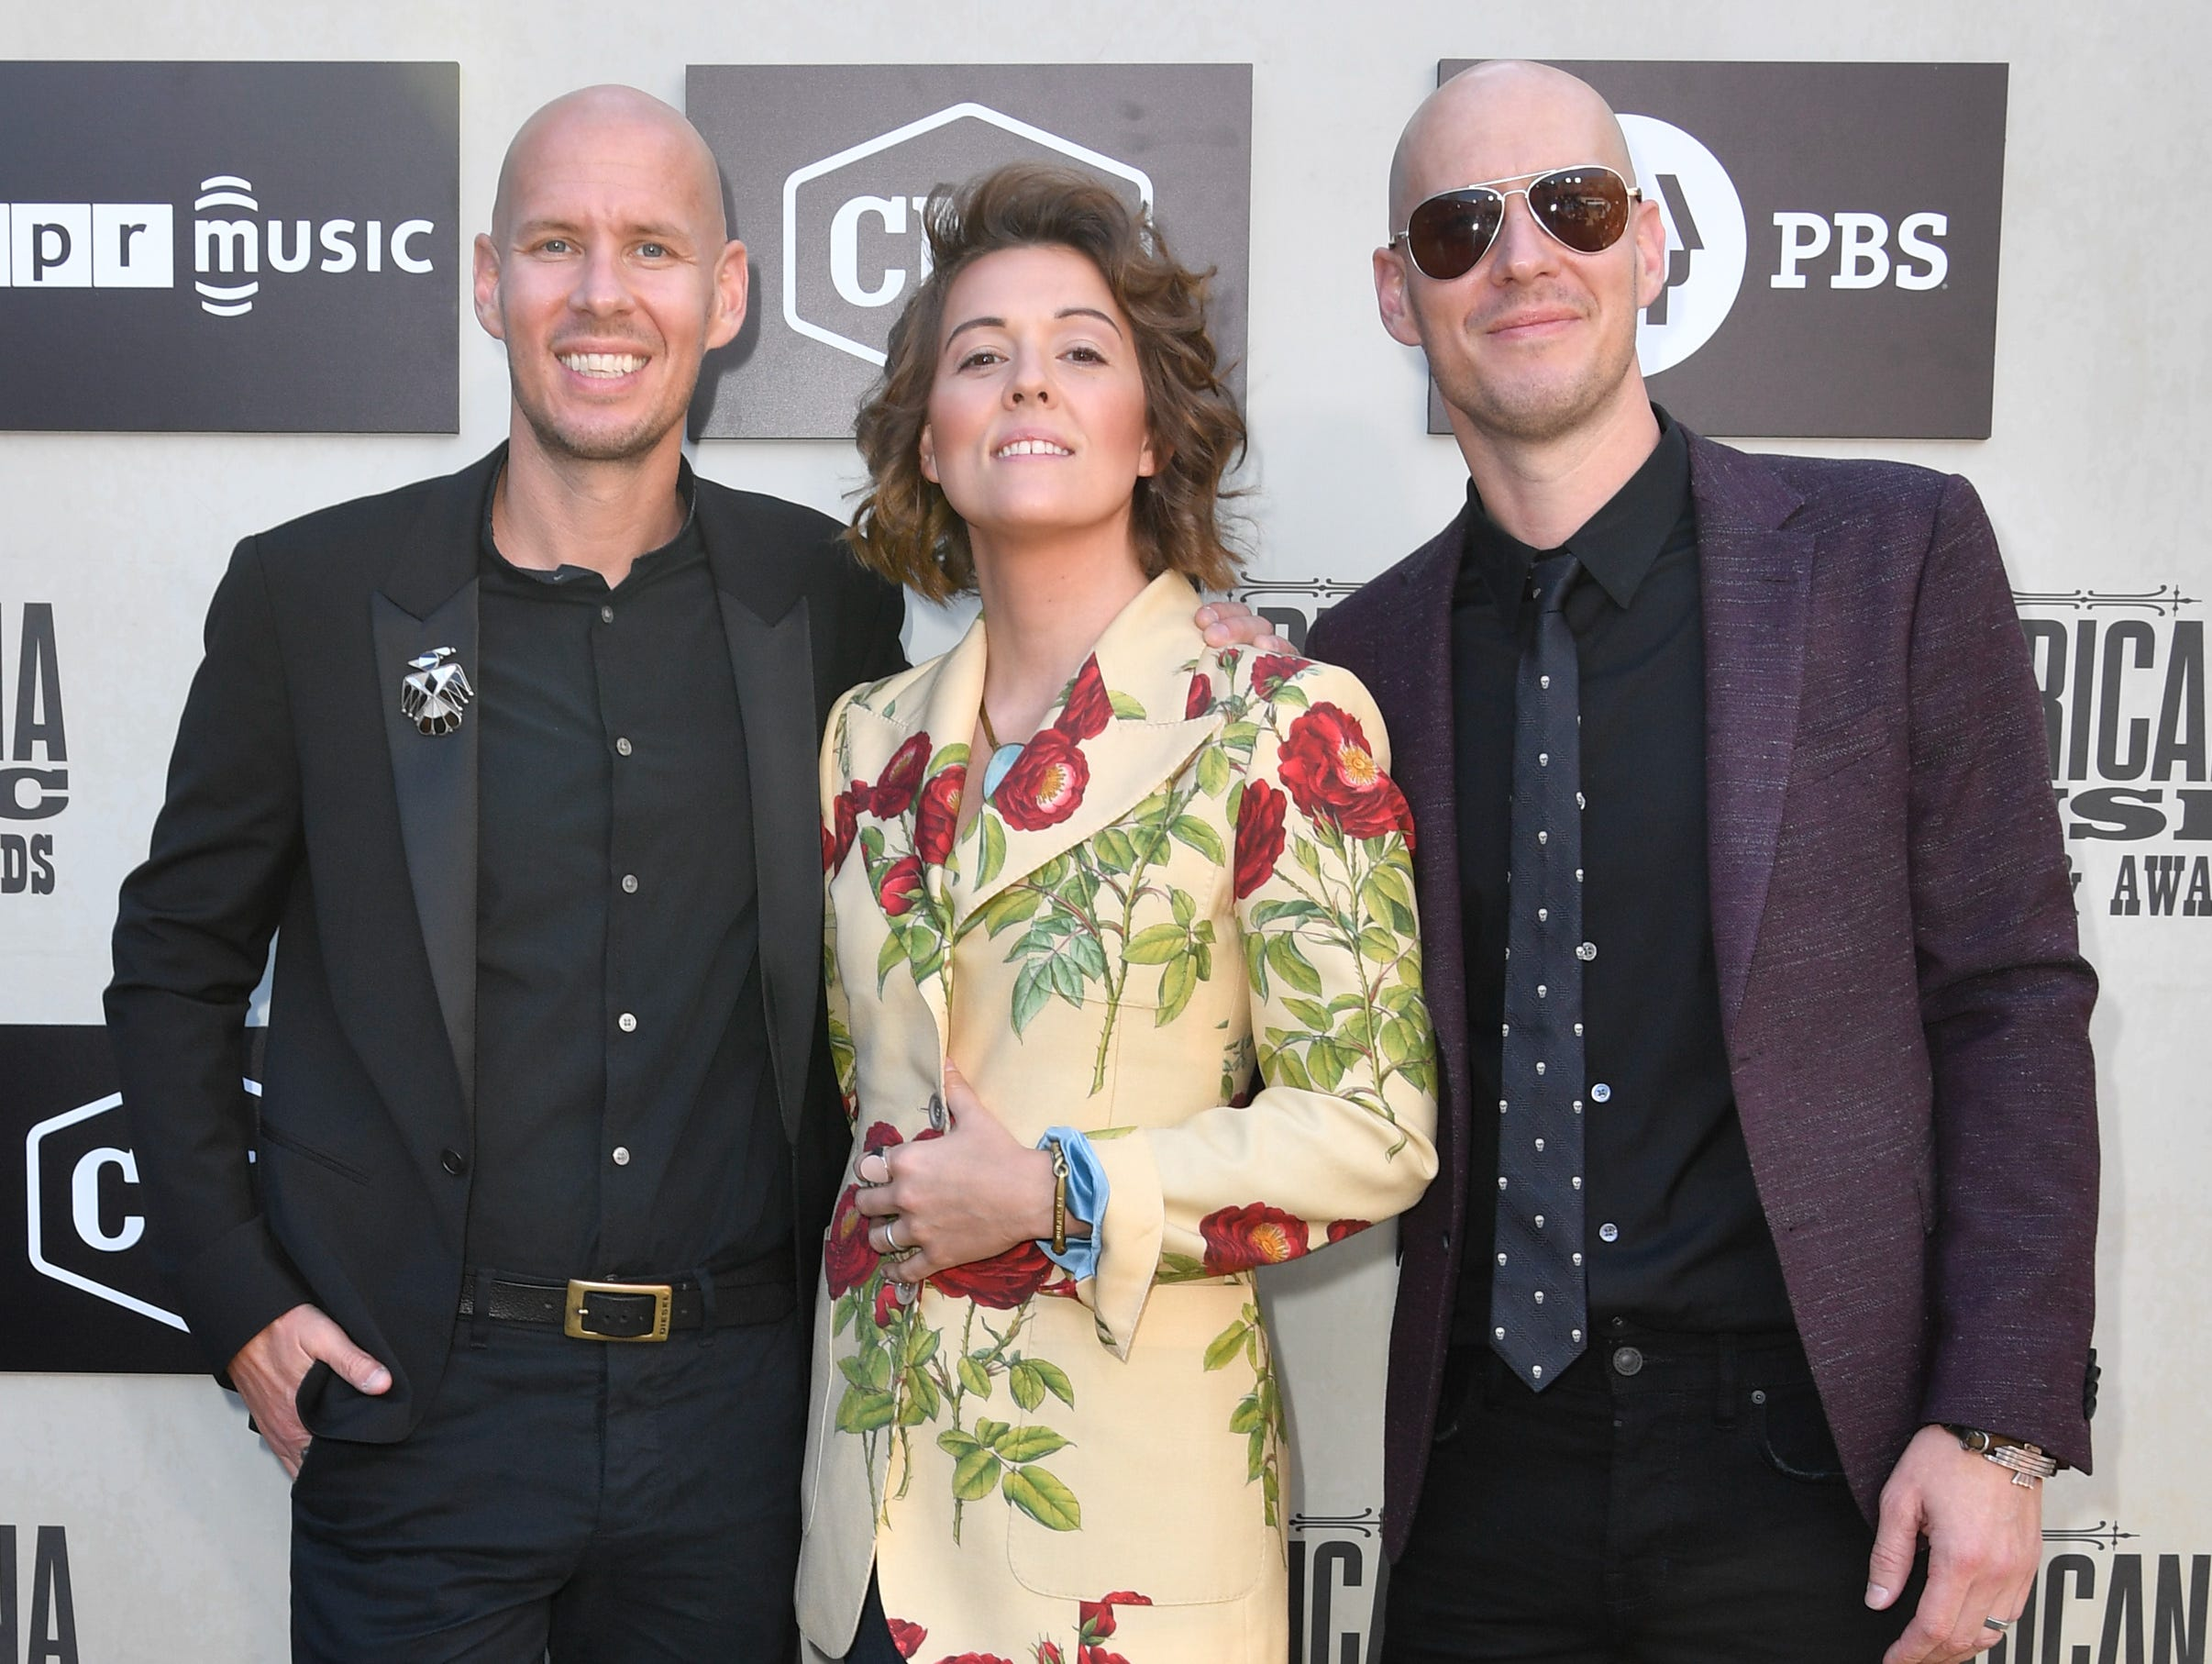 Brandi Carlile, center, poses on the red carpet with Tim Hanseroth and Phil Hanseroth before the 2018 Americana Honors and Awards show at the Ryman Auditorium in Nashville, Tenn., Wednesday, Sept. 12, 2018.